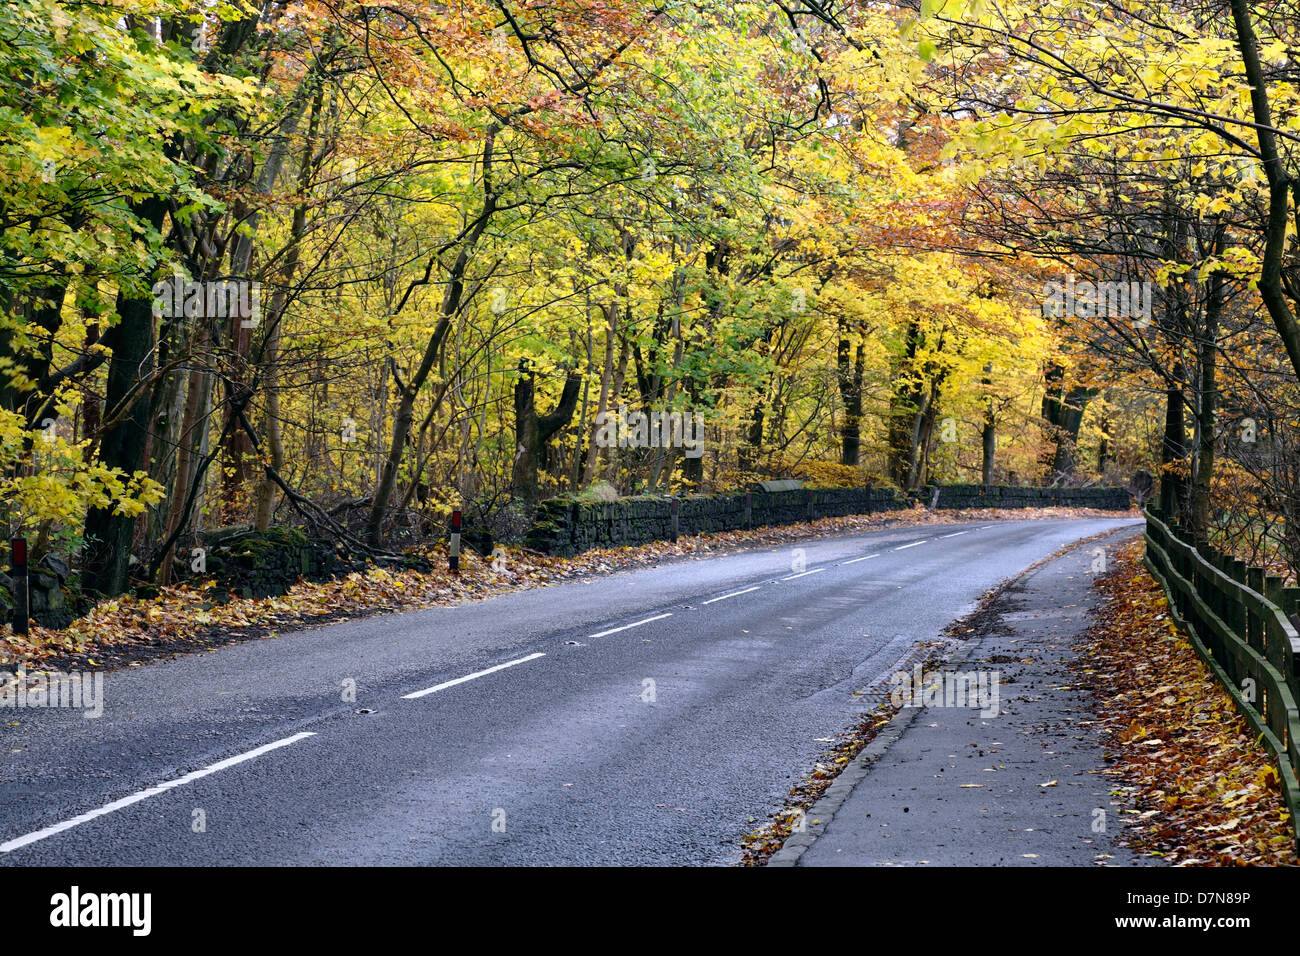 An empty country road in Autumn, Scotland, UK - Stock Image